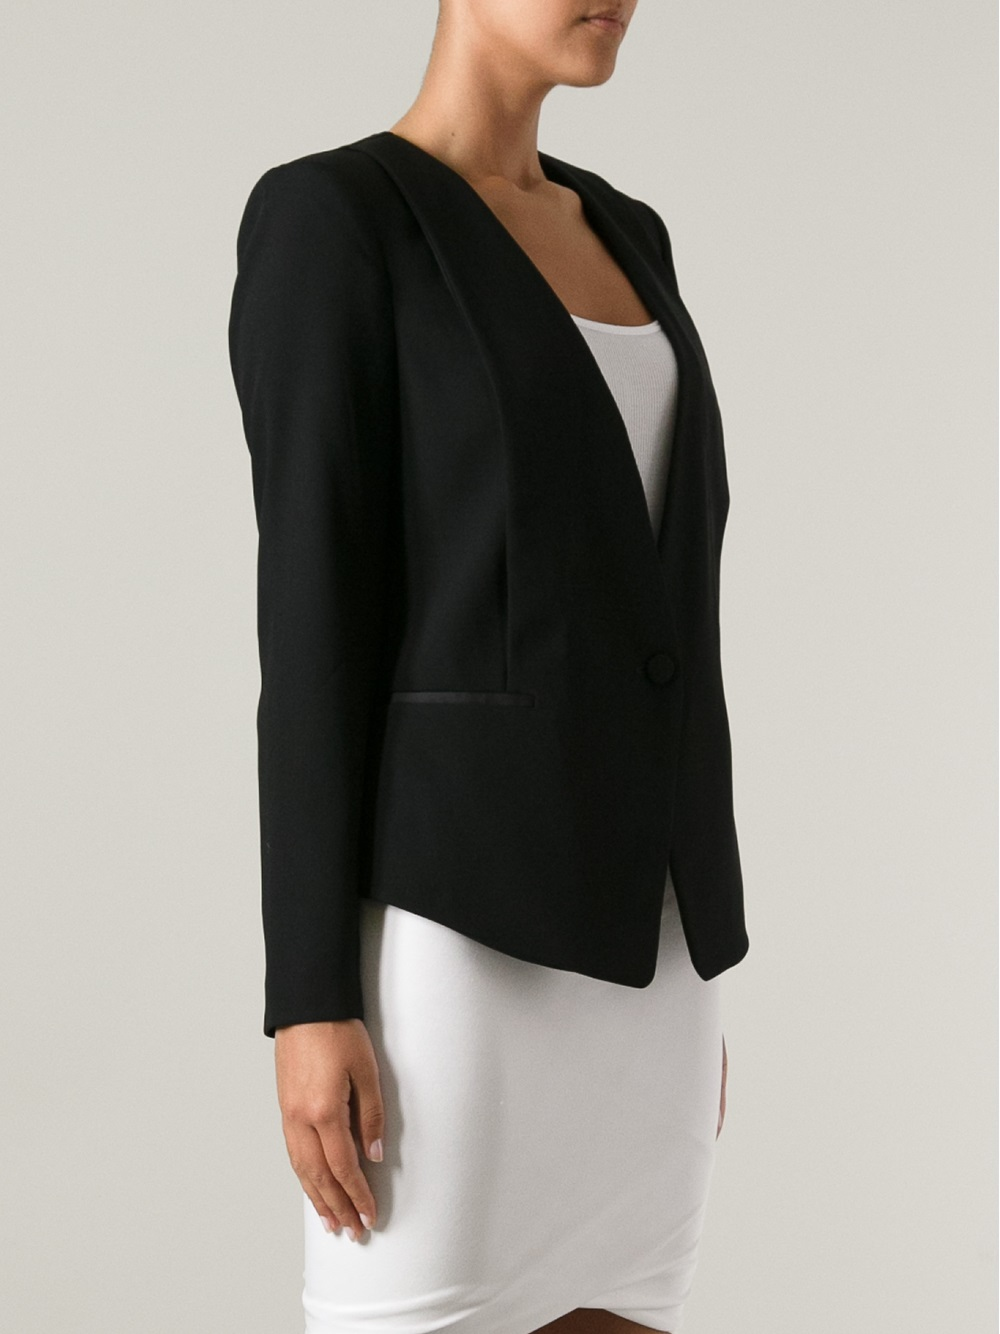 lyst day birger et mikkelsen minimalist blazer in black. Black Bedroom Furniture Sets. Home Design Ideas